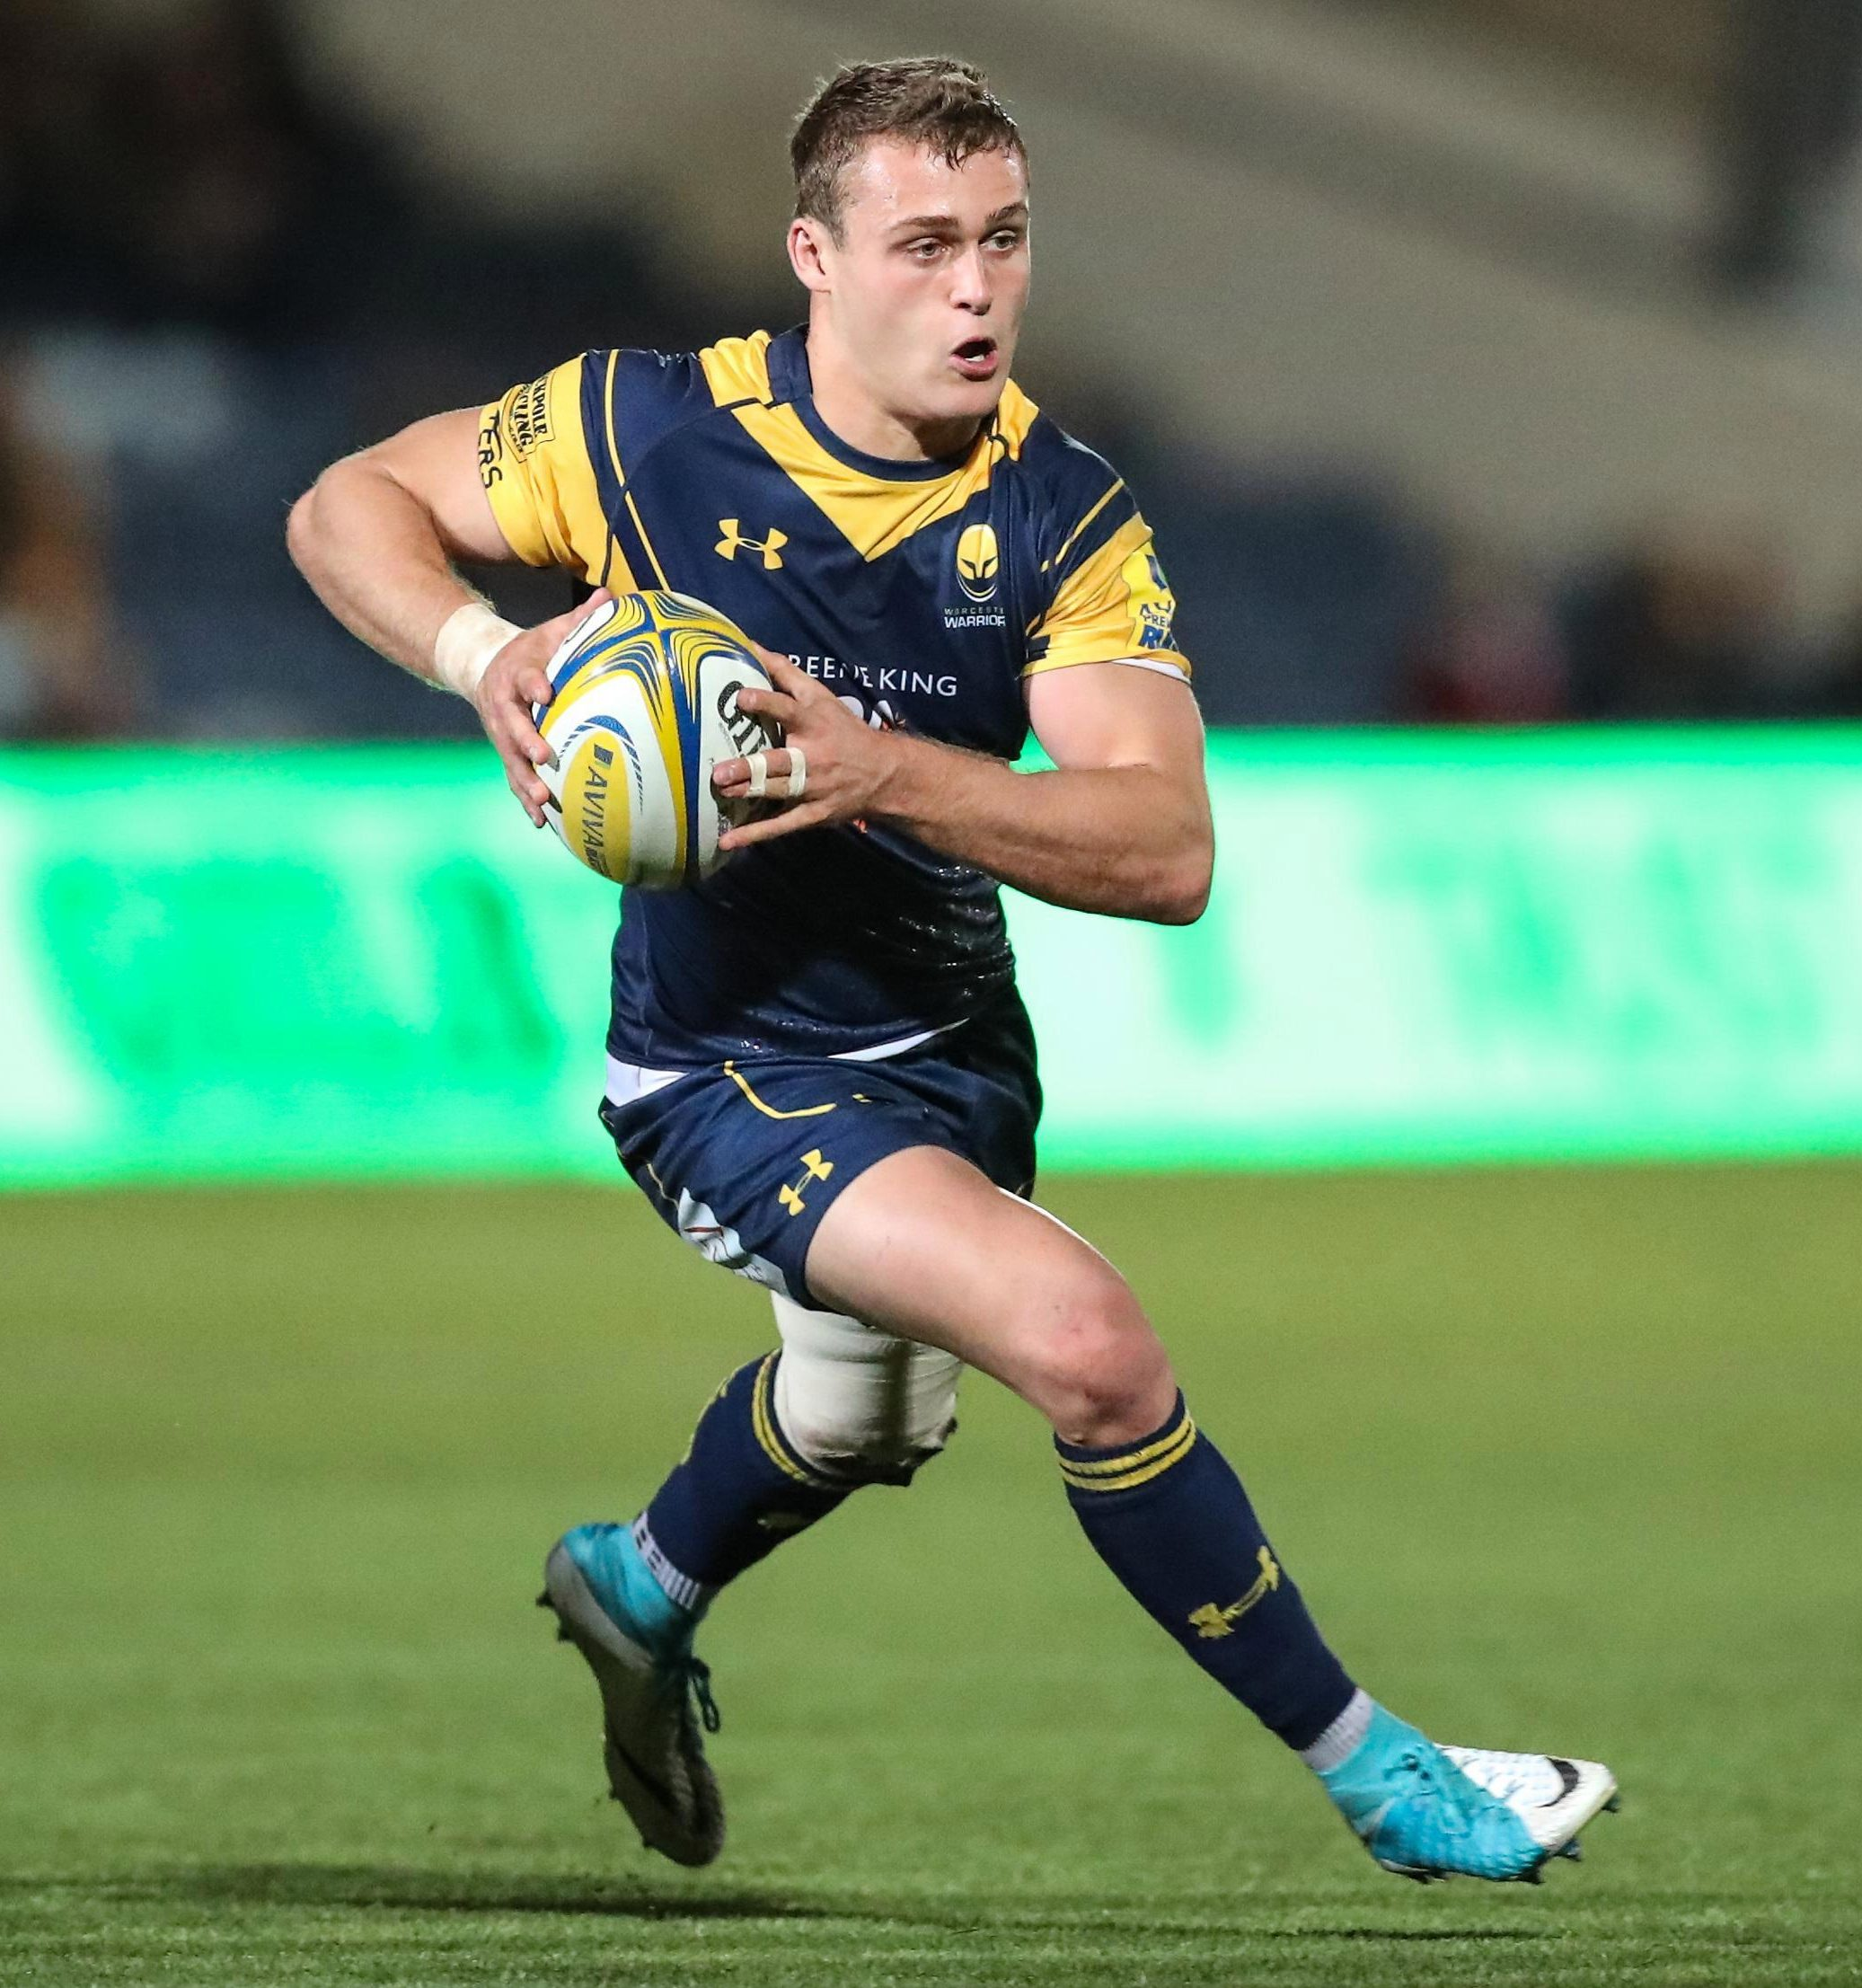 Jamie Shillcock was accused of being mistaken in what he heard Denny Solomona say but the RFU panel believed the Worcester star